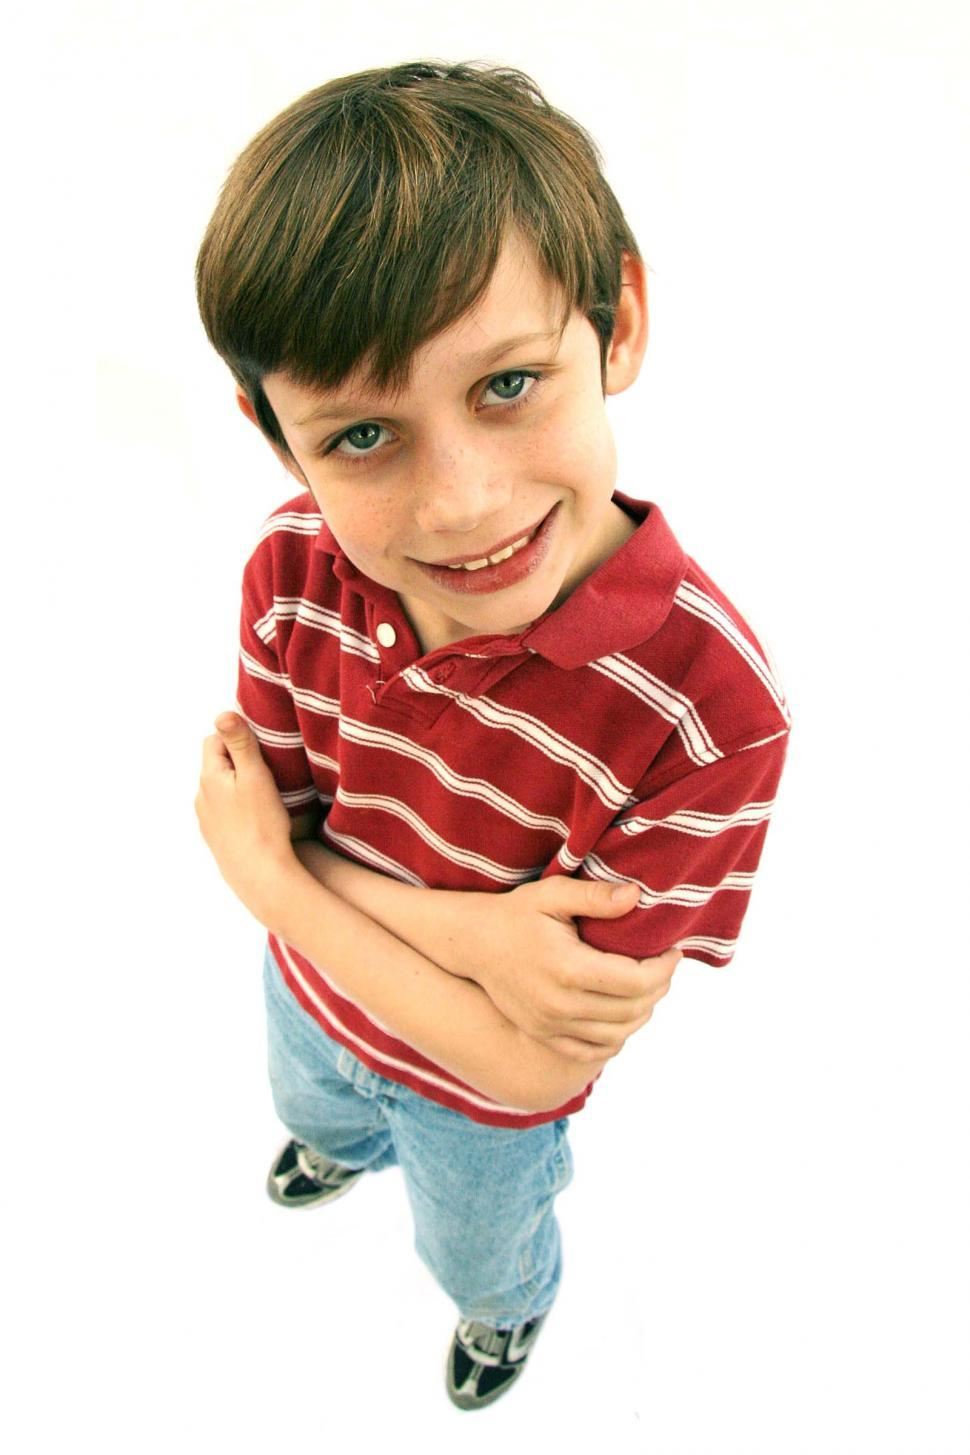 Download Free Stock Photo of Boy looking pleased with arms crossed